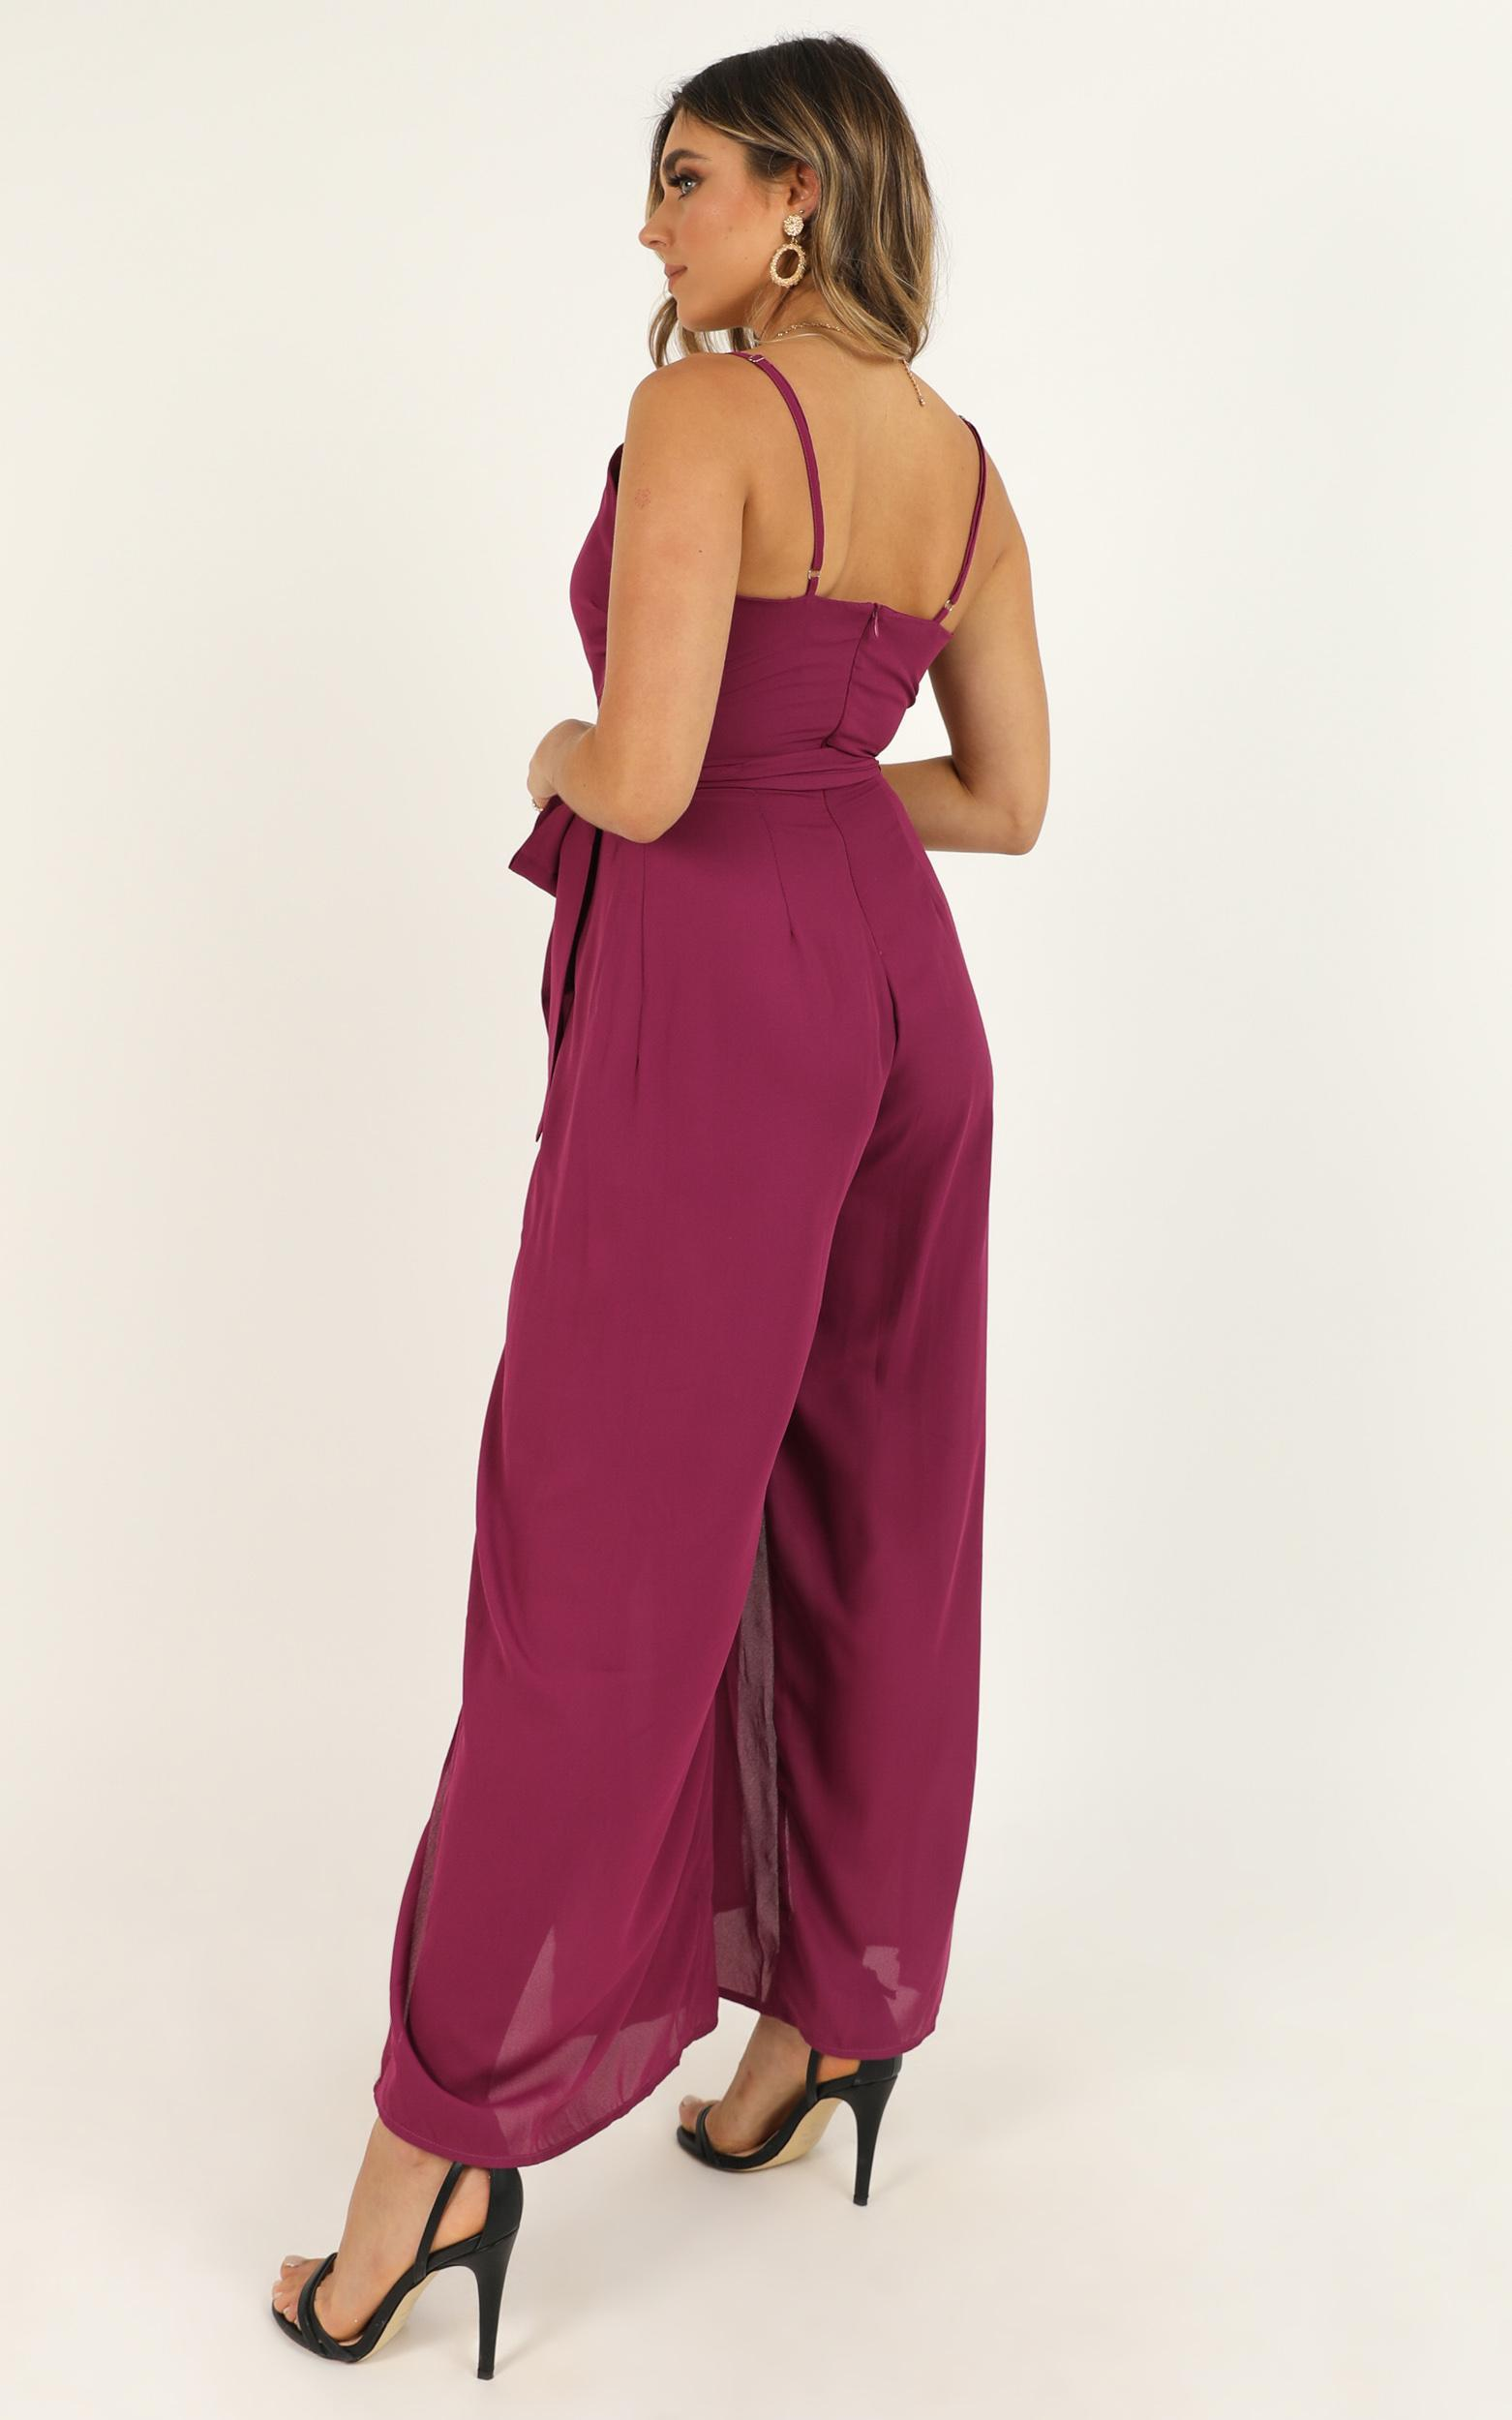 Never Love Me Jumpsuit In berry - 14 (XL), Pink, hi-res image number null